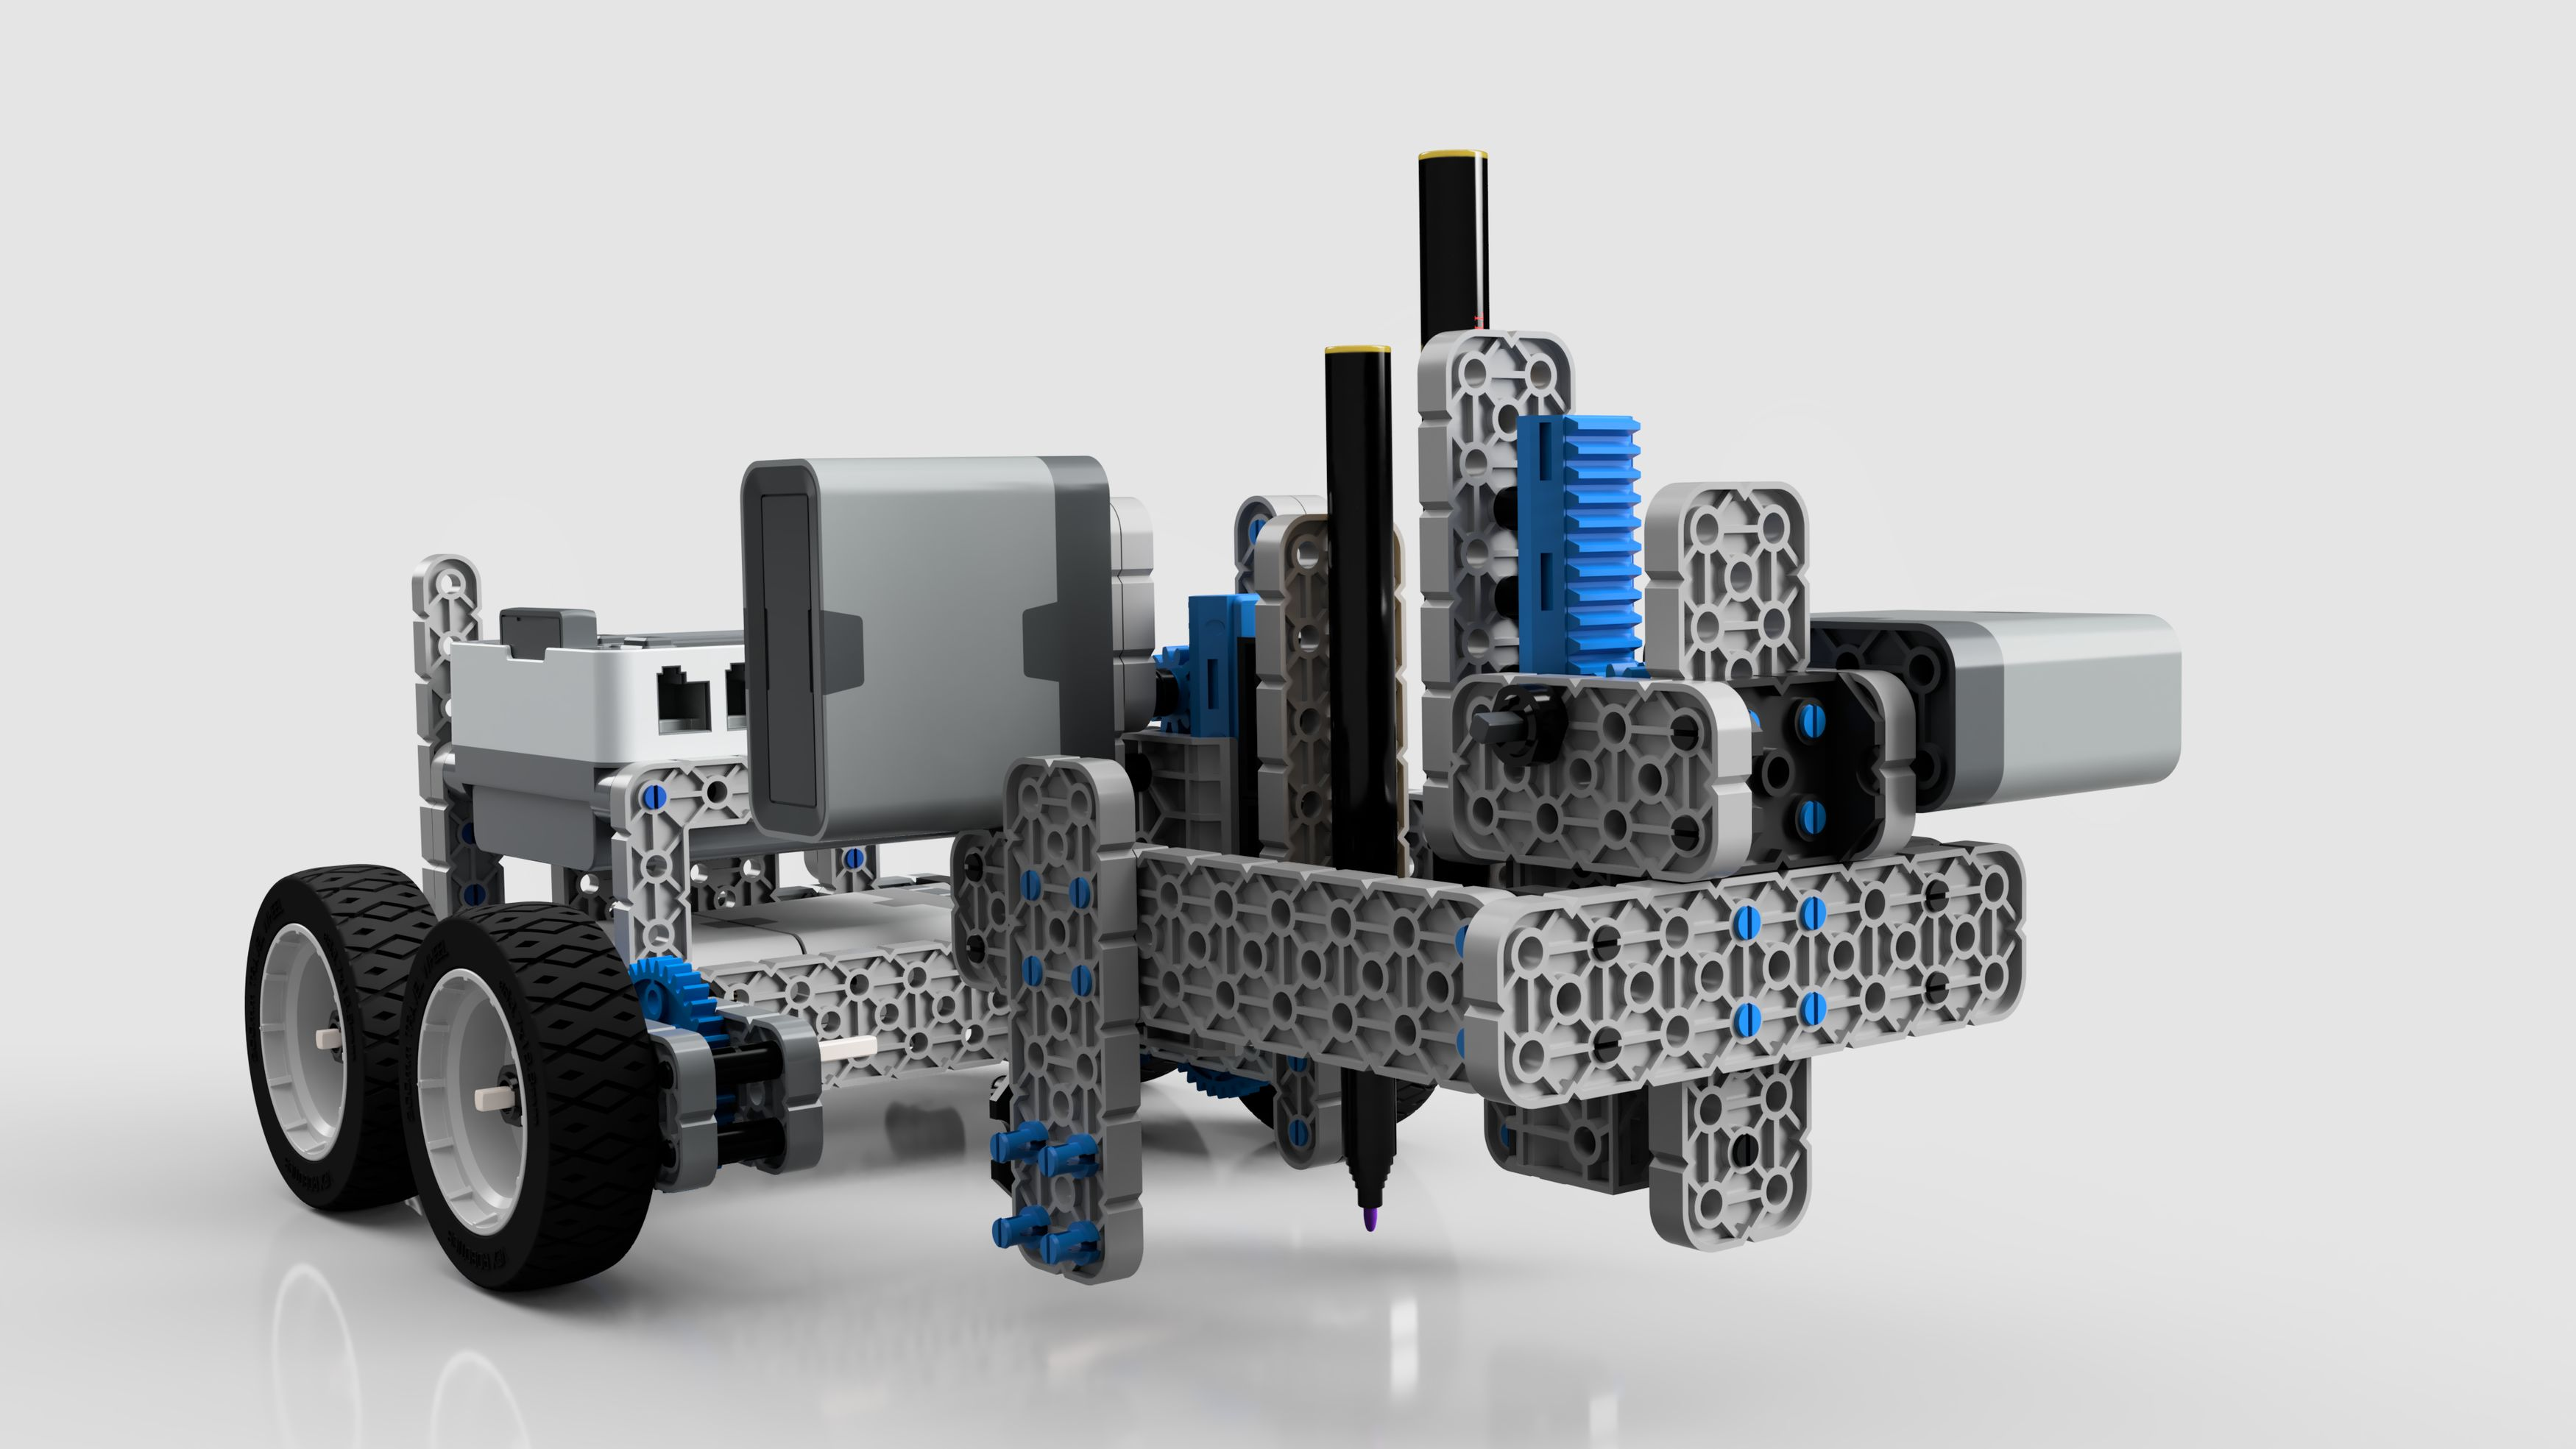 Vex-iq-robot-caneta-2020-may-24-04-59-25pm-000-customizedview30895595199-png-3500-3500